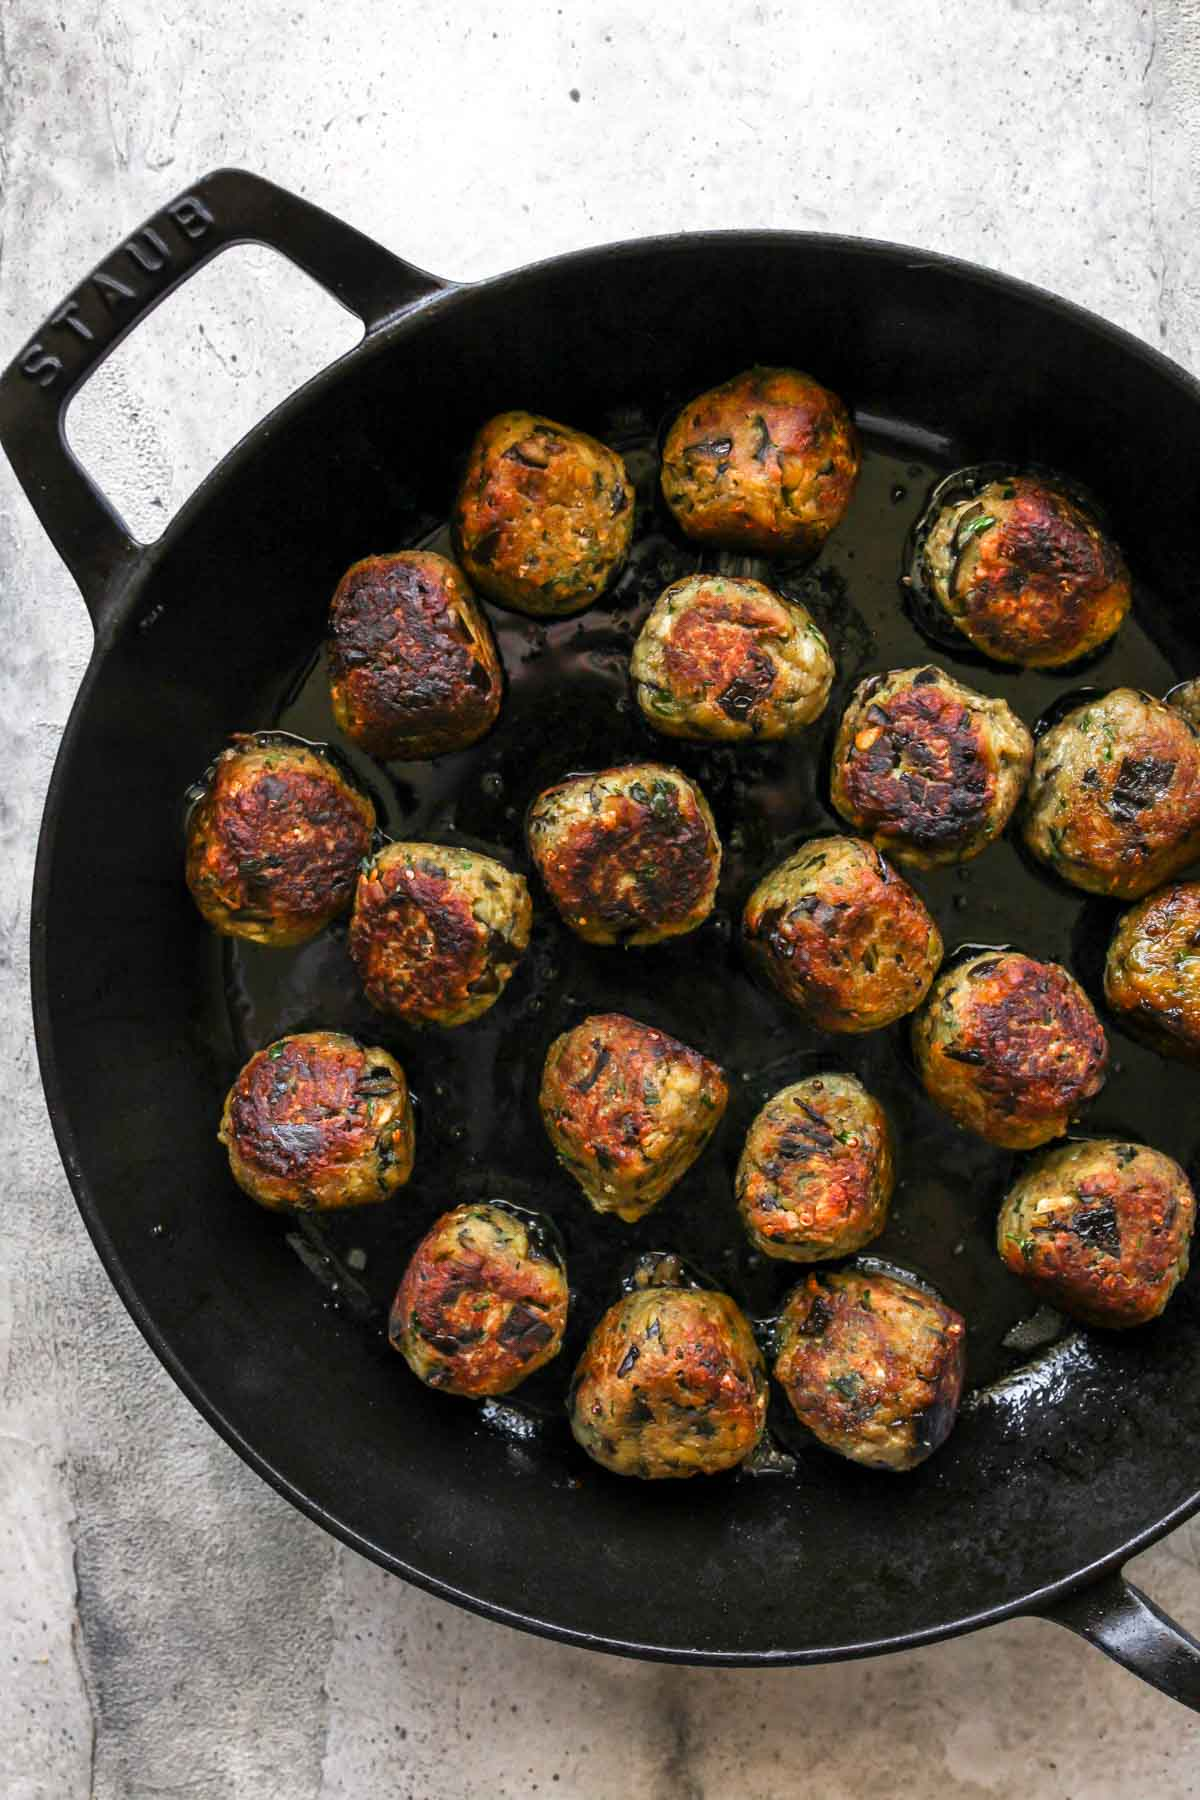 Vegetarian meatballs being seared in a large black skillet